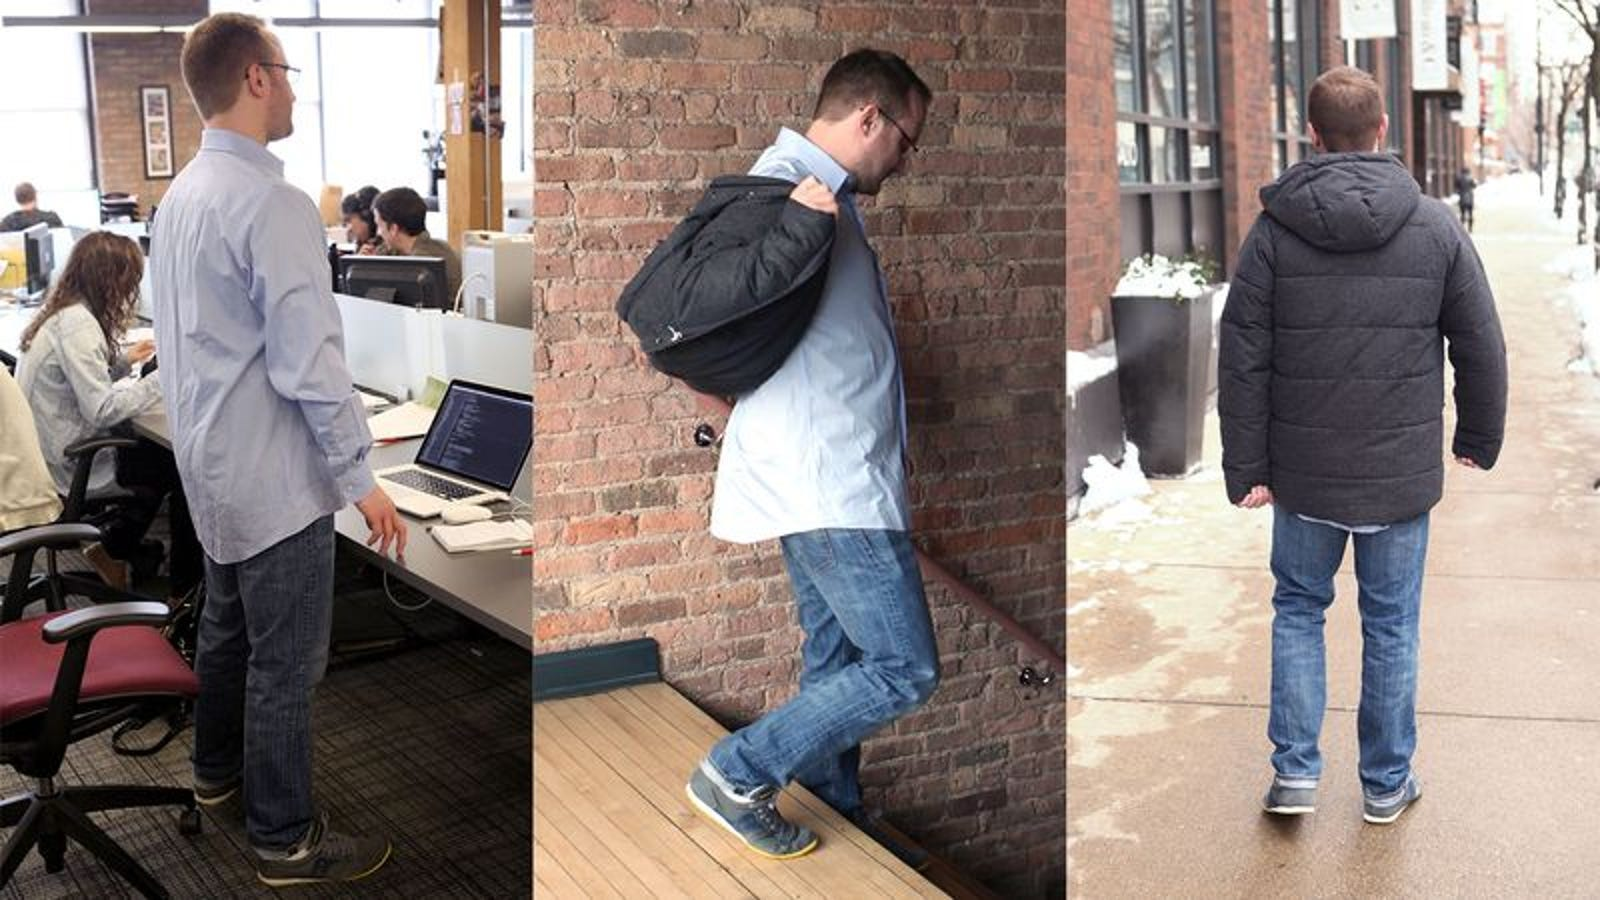 Peachy Health Experts Recommend Standing Up At Desk Leaving Office Download Free Architecture Designs Scobabritishbridgeorg